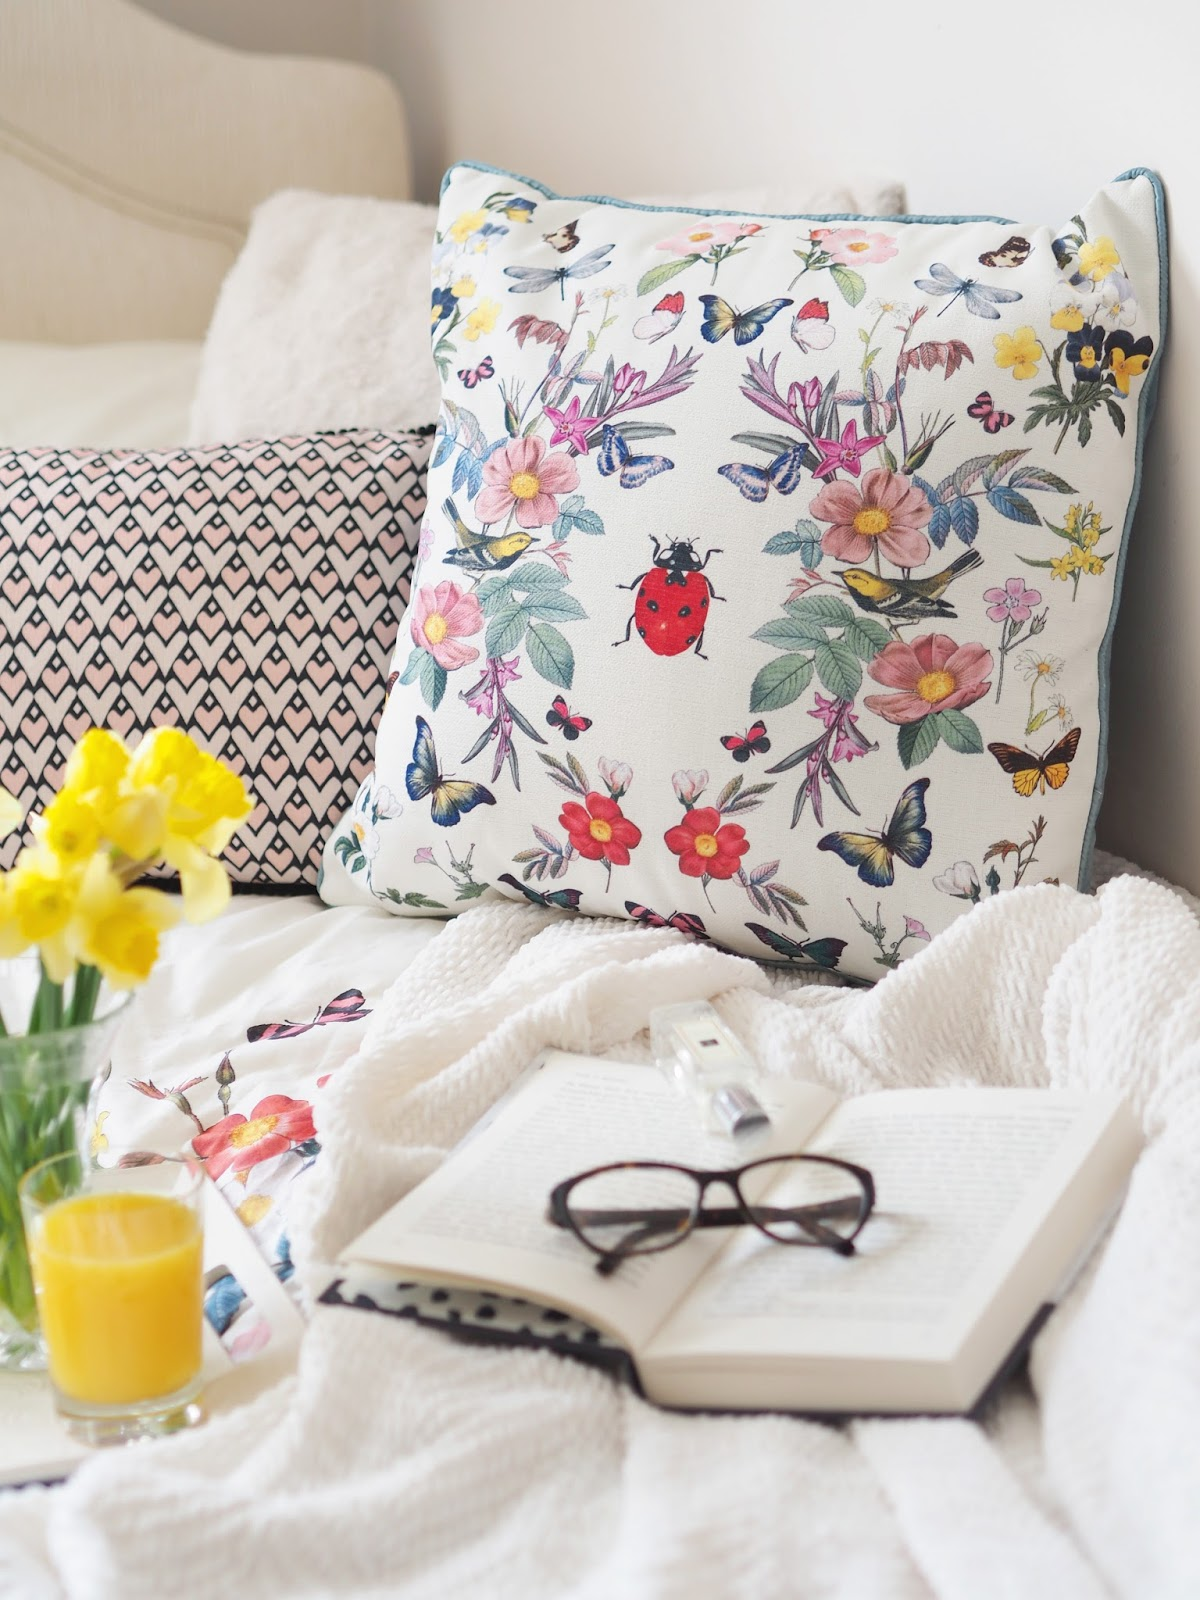 10 Ways To Spring Clean Your Life, UK Blogger, Lifestyle Blogger, Homeware, Lifestyle Tips, Spring Inspiration, Oasis Fashion, Oasis Homeware, Interior Inspiration, Interior Ideas